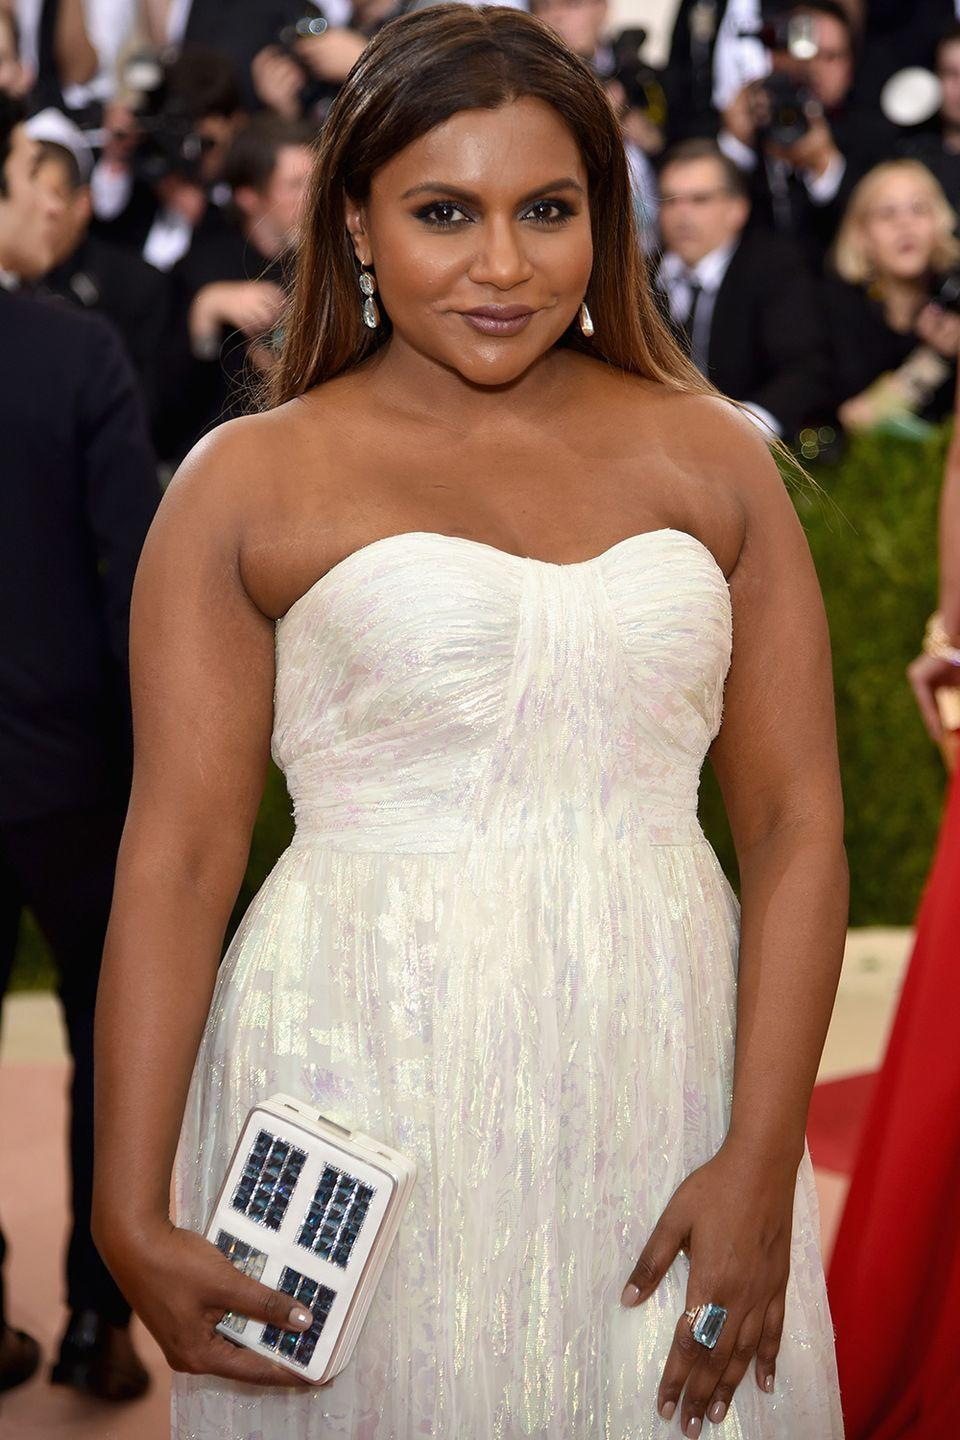 "<p><strong>Born</strong>: Vera Mindy Chokalingam</p><p>Mindy Kaling wasn't born a Mindy. The actress's parents are originally from India and wanted to give their daughter a Hindu name, but Mindy always preferred her middle name. ""Vera isn't just an old Russian lady's name; it's an incarnation of a Hindu goddess,"" the actress told <em><a href=""http://www.improper.com/arts-culture/passion-projects/"" rel=""nofollow noopener"" target=""_blank"" data-ylk=""slk:Improper Bostonian"" class=""link rapid-noclick-resp"">Improper Bostonian</a></em> in 2006. ""But they never called me it."" Then, when the actress was trying to make her way as an actress, she also opted to shorten her last name from Chokalingam to Kaling.</p>"